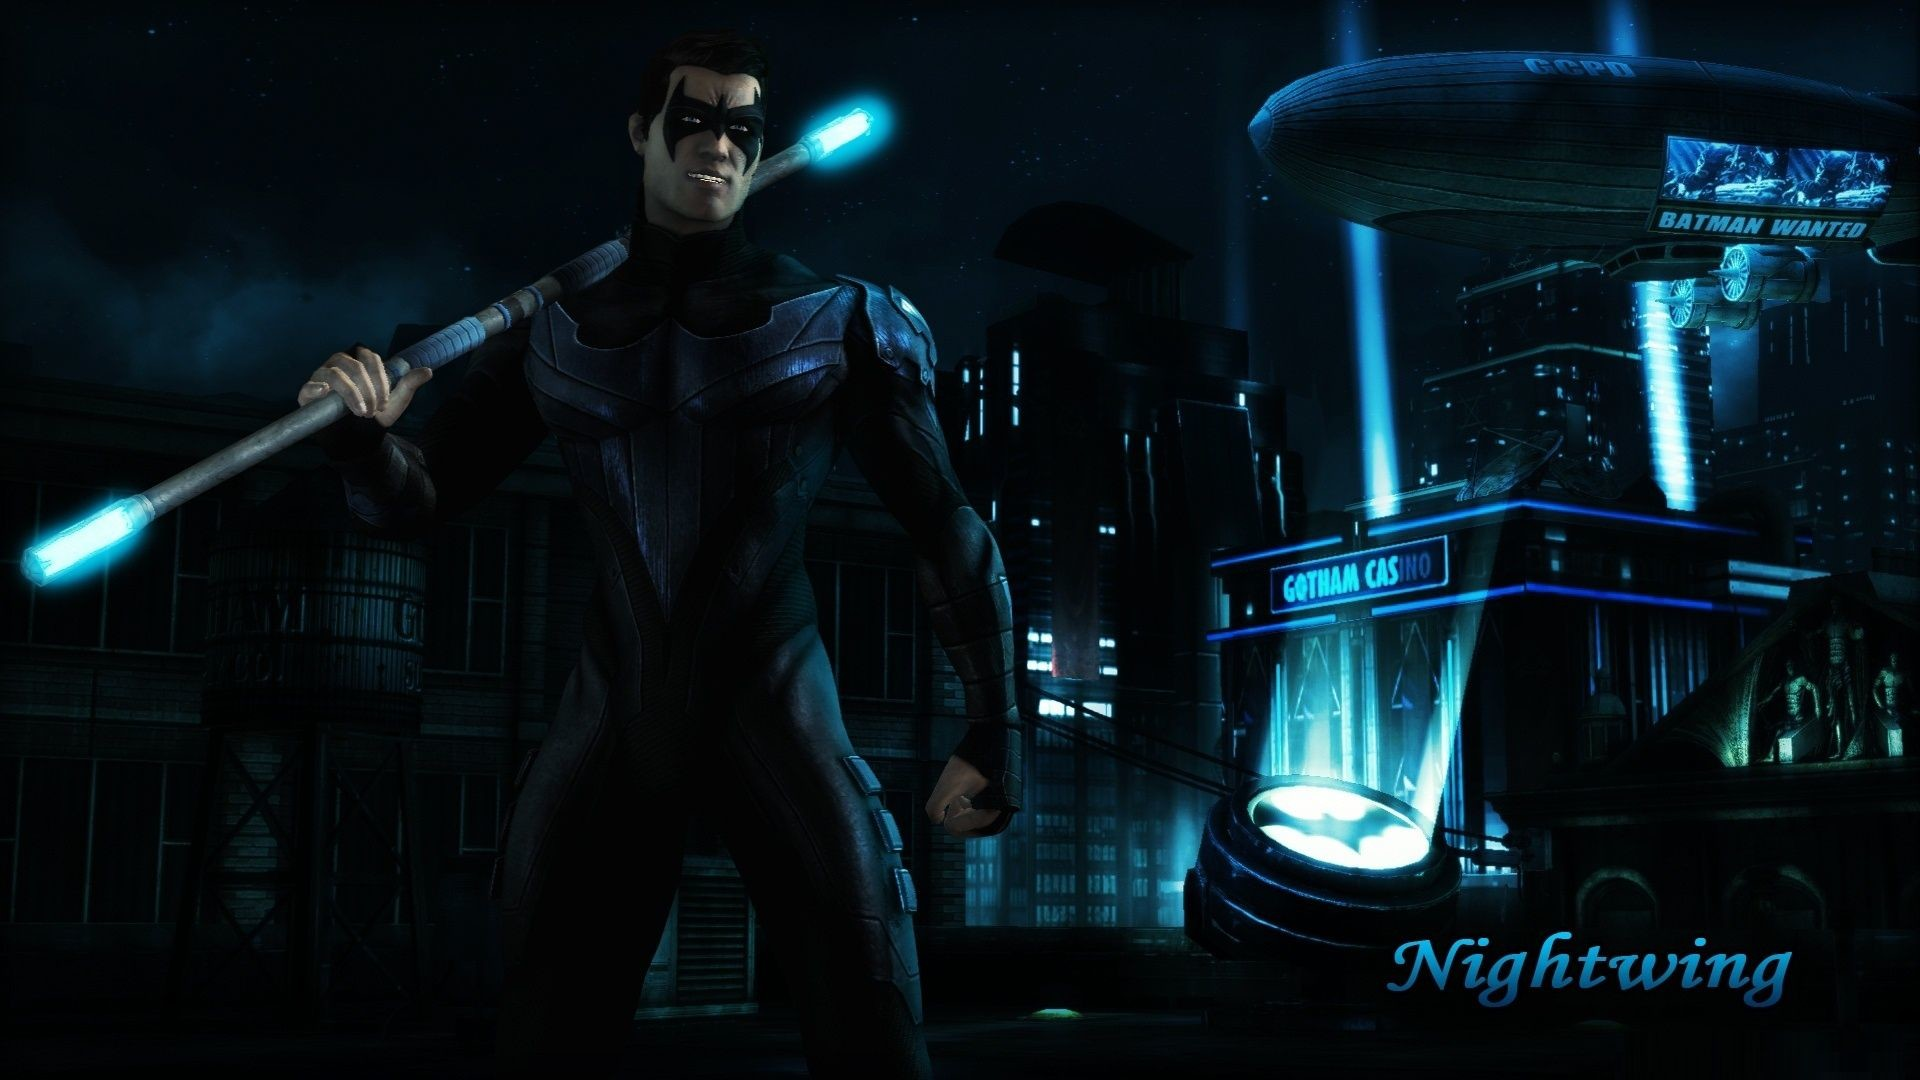 Res: 1920x1080, Hd wallpaper · Nightwing Comic Wallpapers